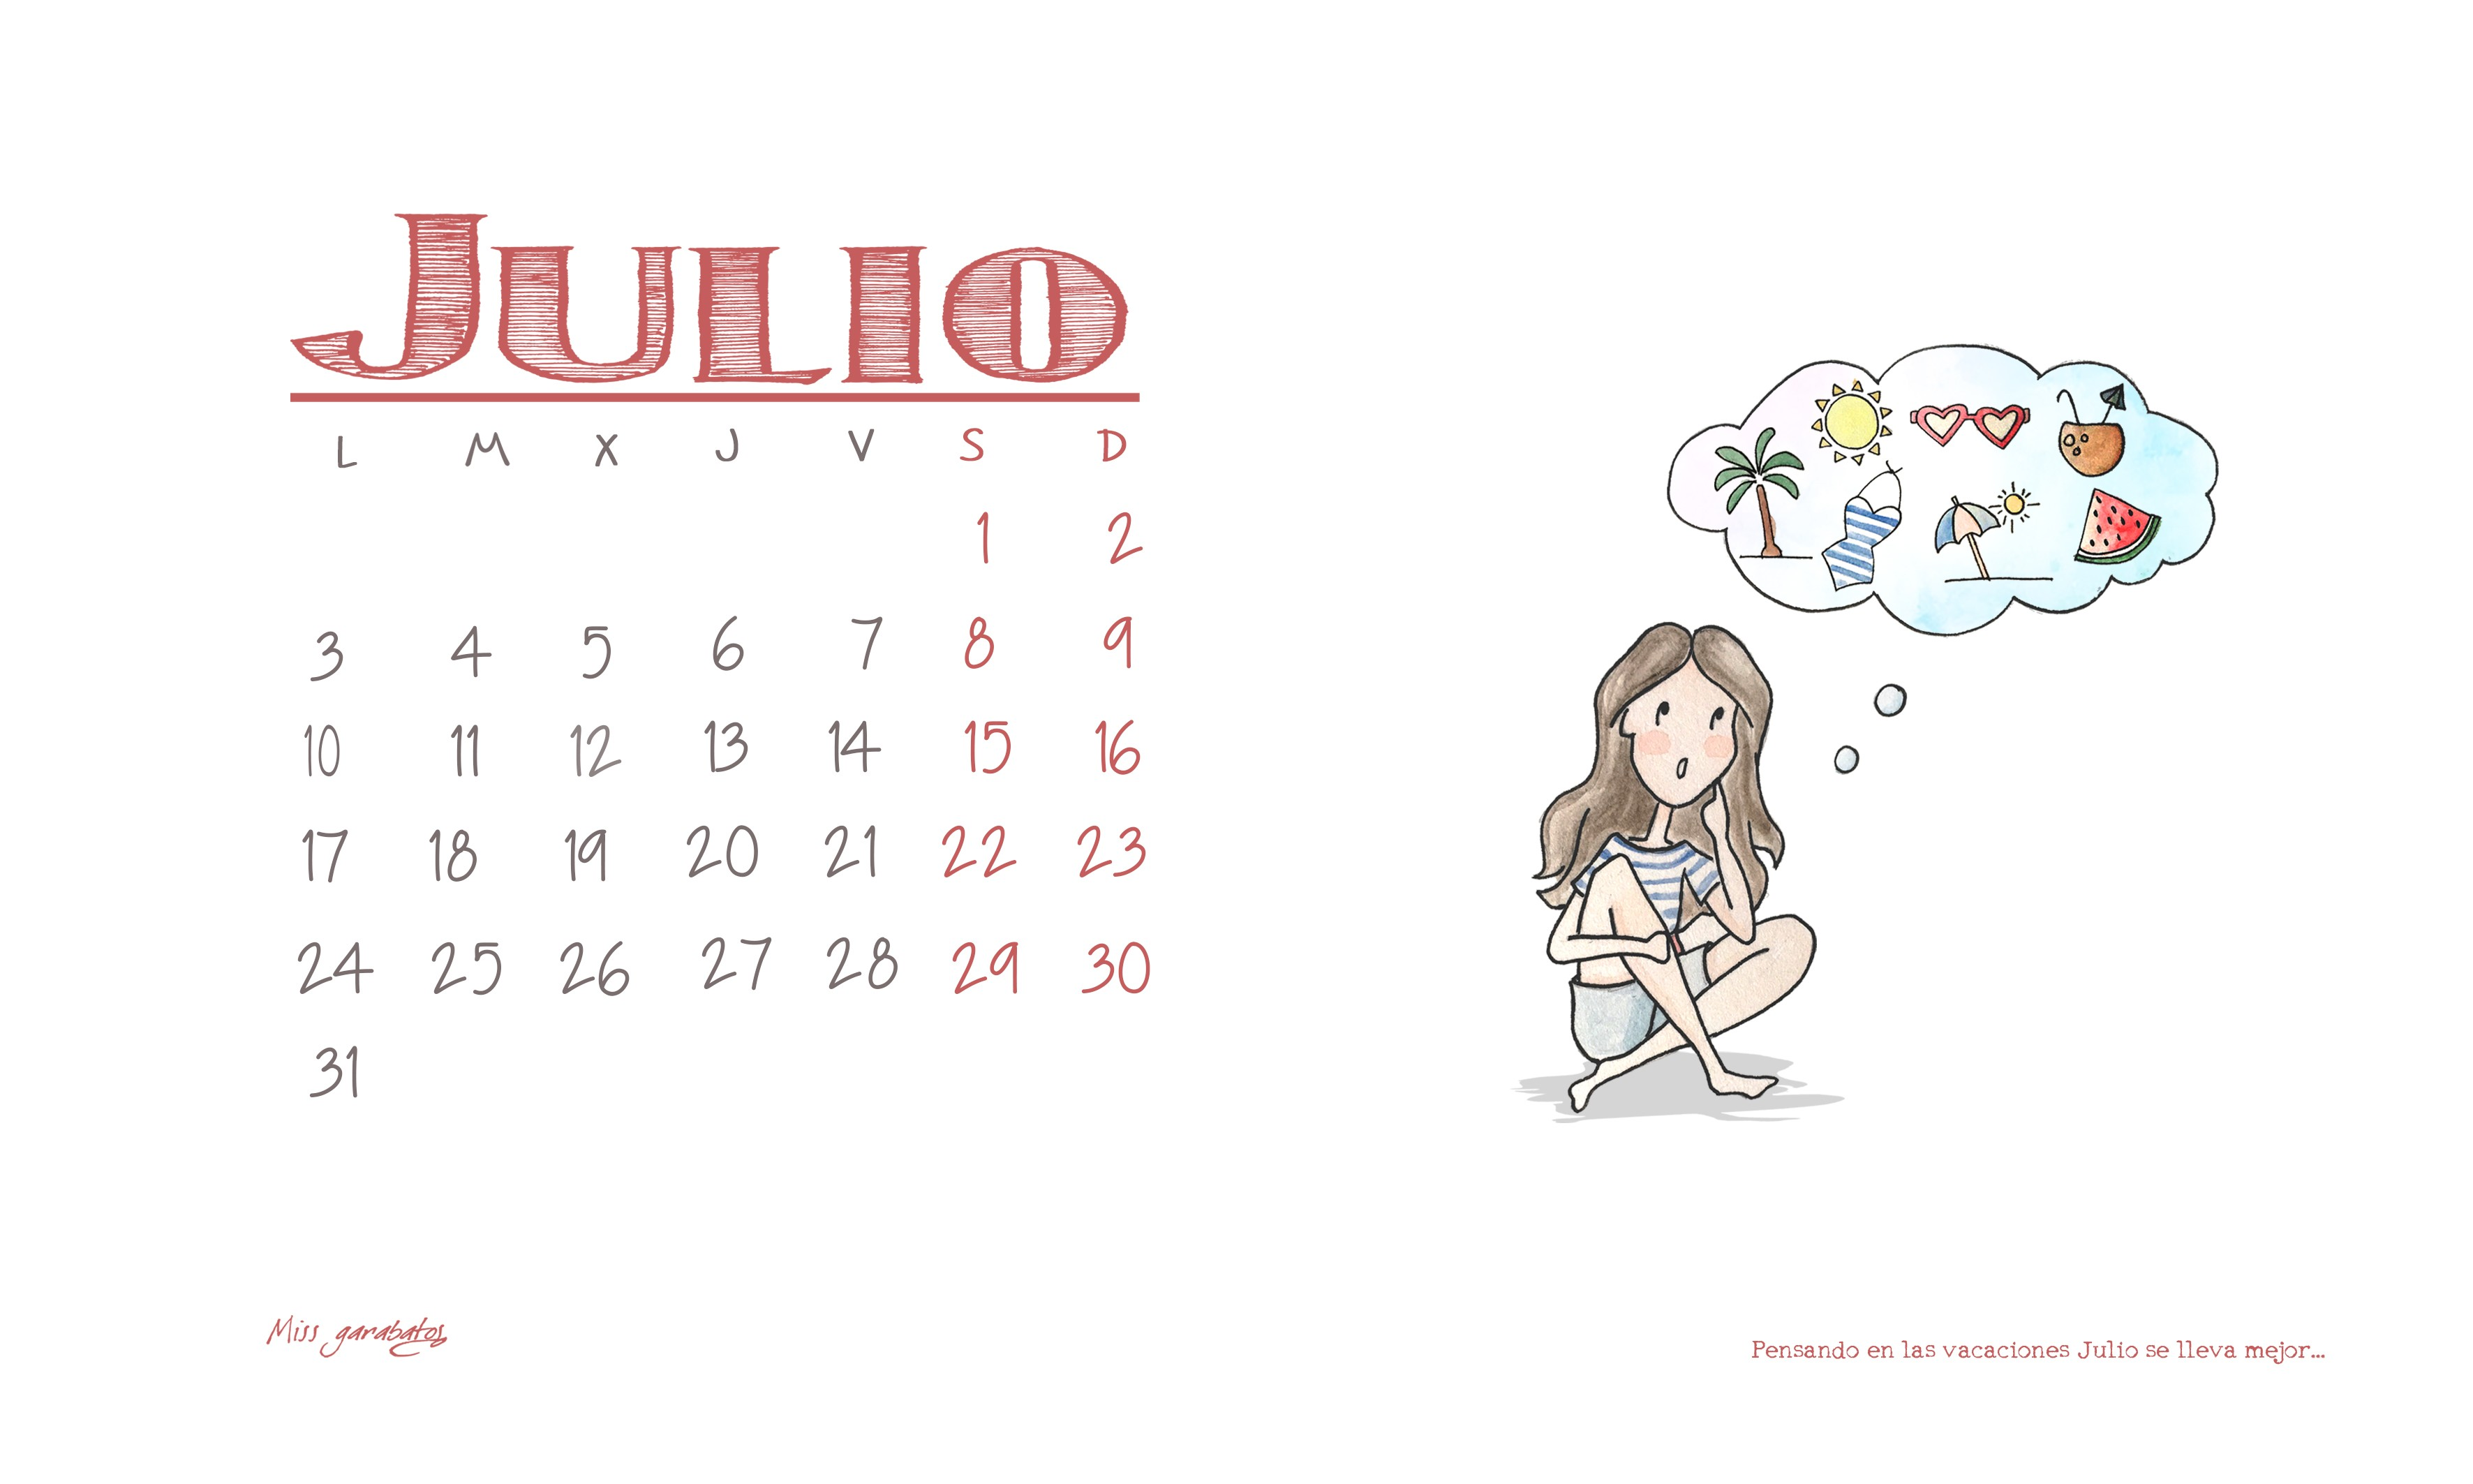 Calendario Imprimir Julio 2017 Más Recientes Calendario De Julio – Miss Garabatos Of Calendario Imprimir Julio 2017 Más Caliente Julio Calendario Para Imprimir